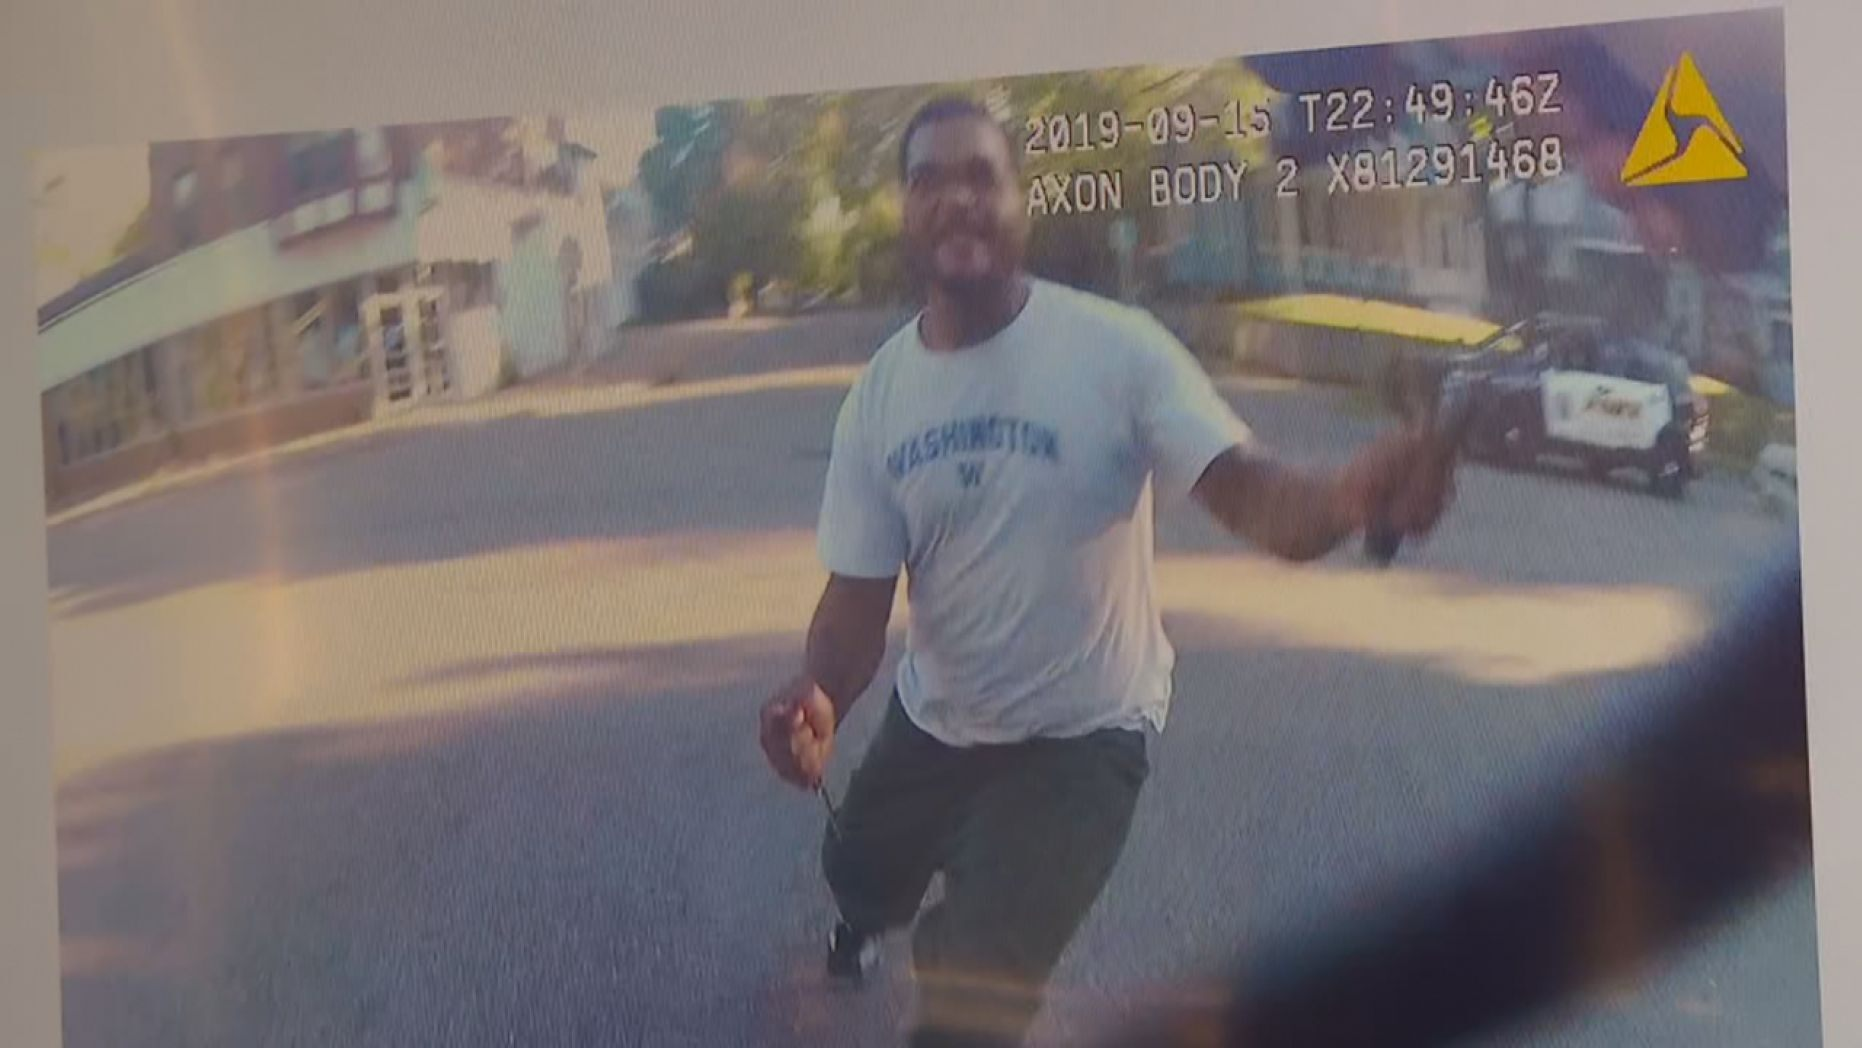 Authorities released the body camera video from the Sept. 15 fatal shooting of Ronald Davis by a St. Paul police officer.